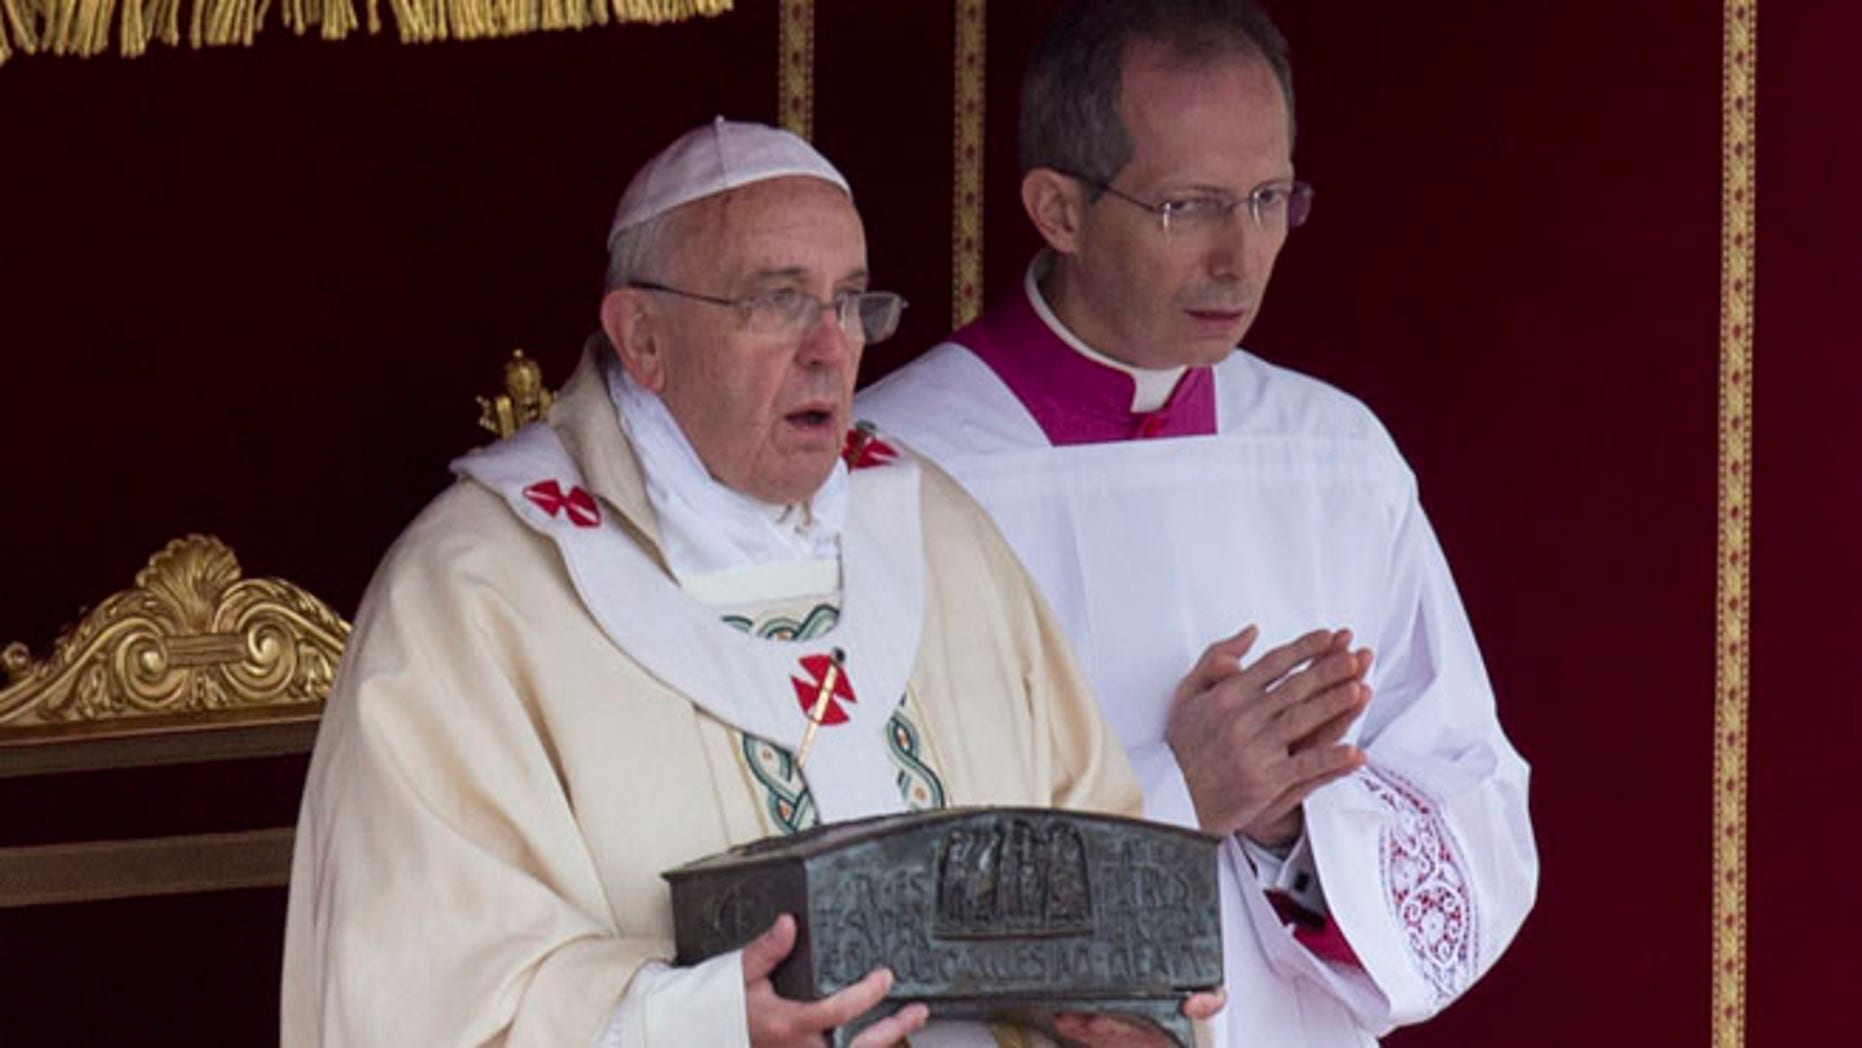 Nov. 24, 2013: Pope Francis, left, holds the relics of St. Peter as he celebrates mass for the end of the Year of Faith, in St. Peter's Square at the Vatican.